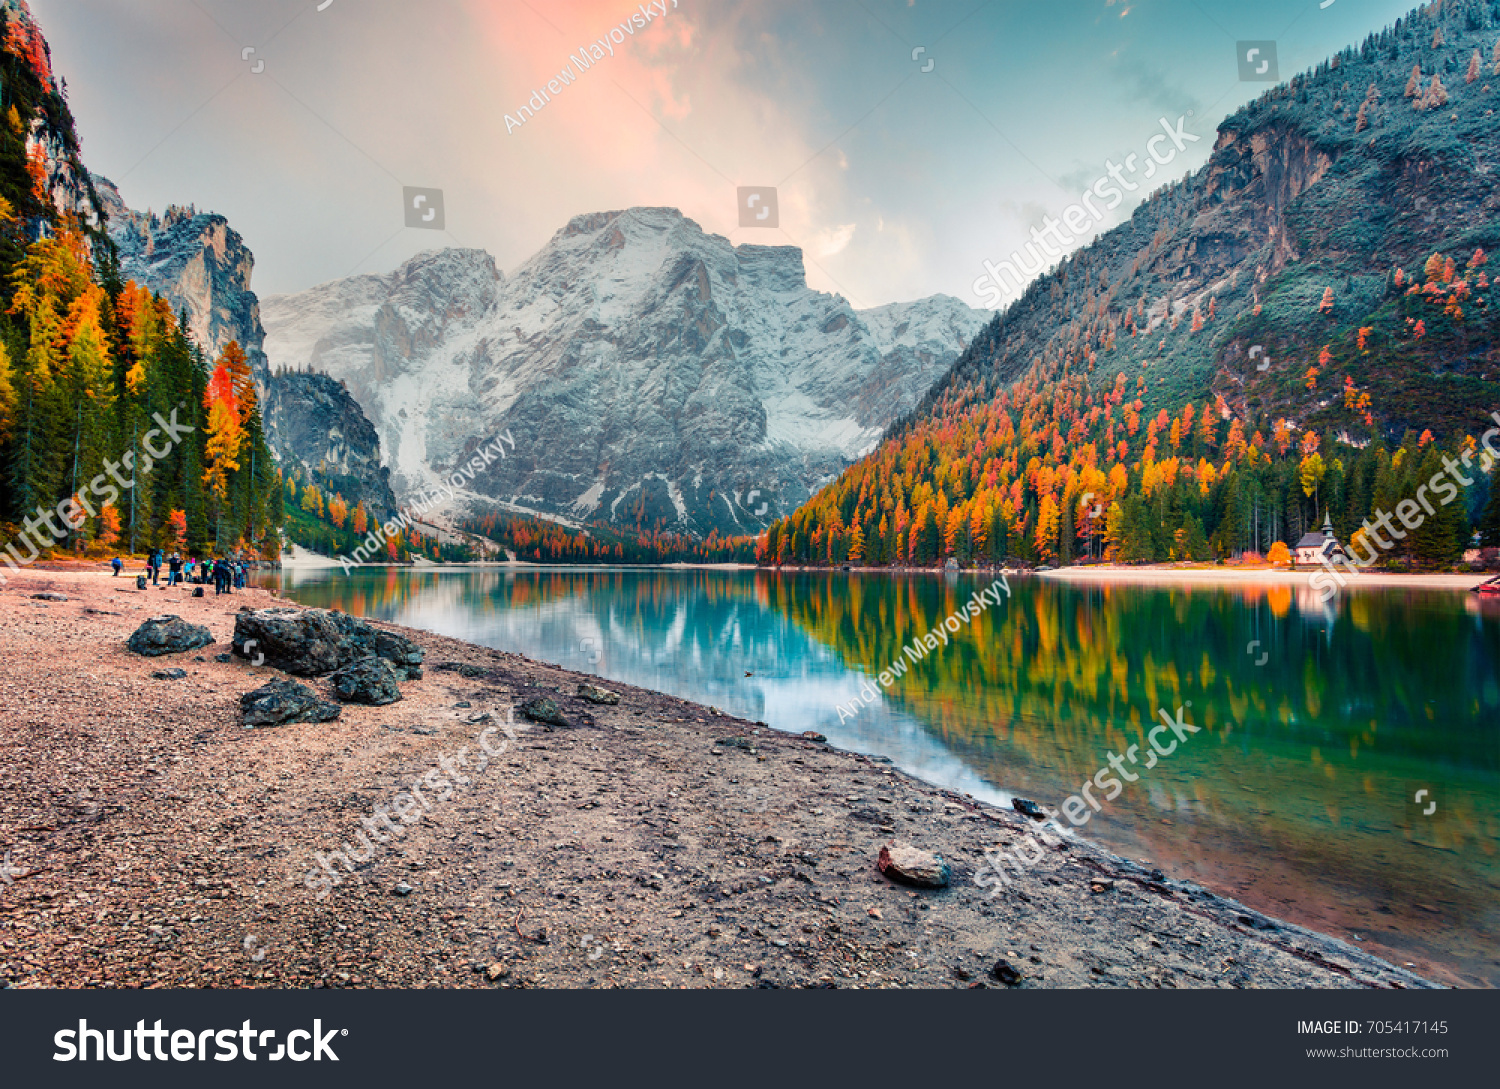 Popular photographers attraction of Braies Lake. Colorful autumn landscape in Italian Alps, Naturpark Fanes-Sennes-Prags, Dolomite, Italy, Europe. Beauty of nature concept background. #705417145